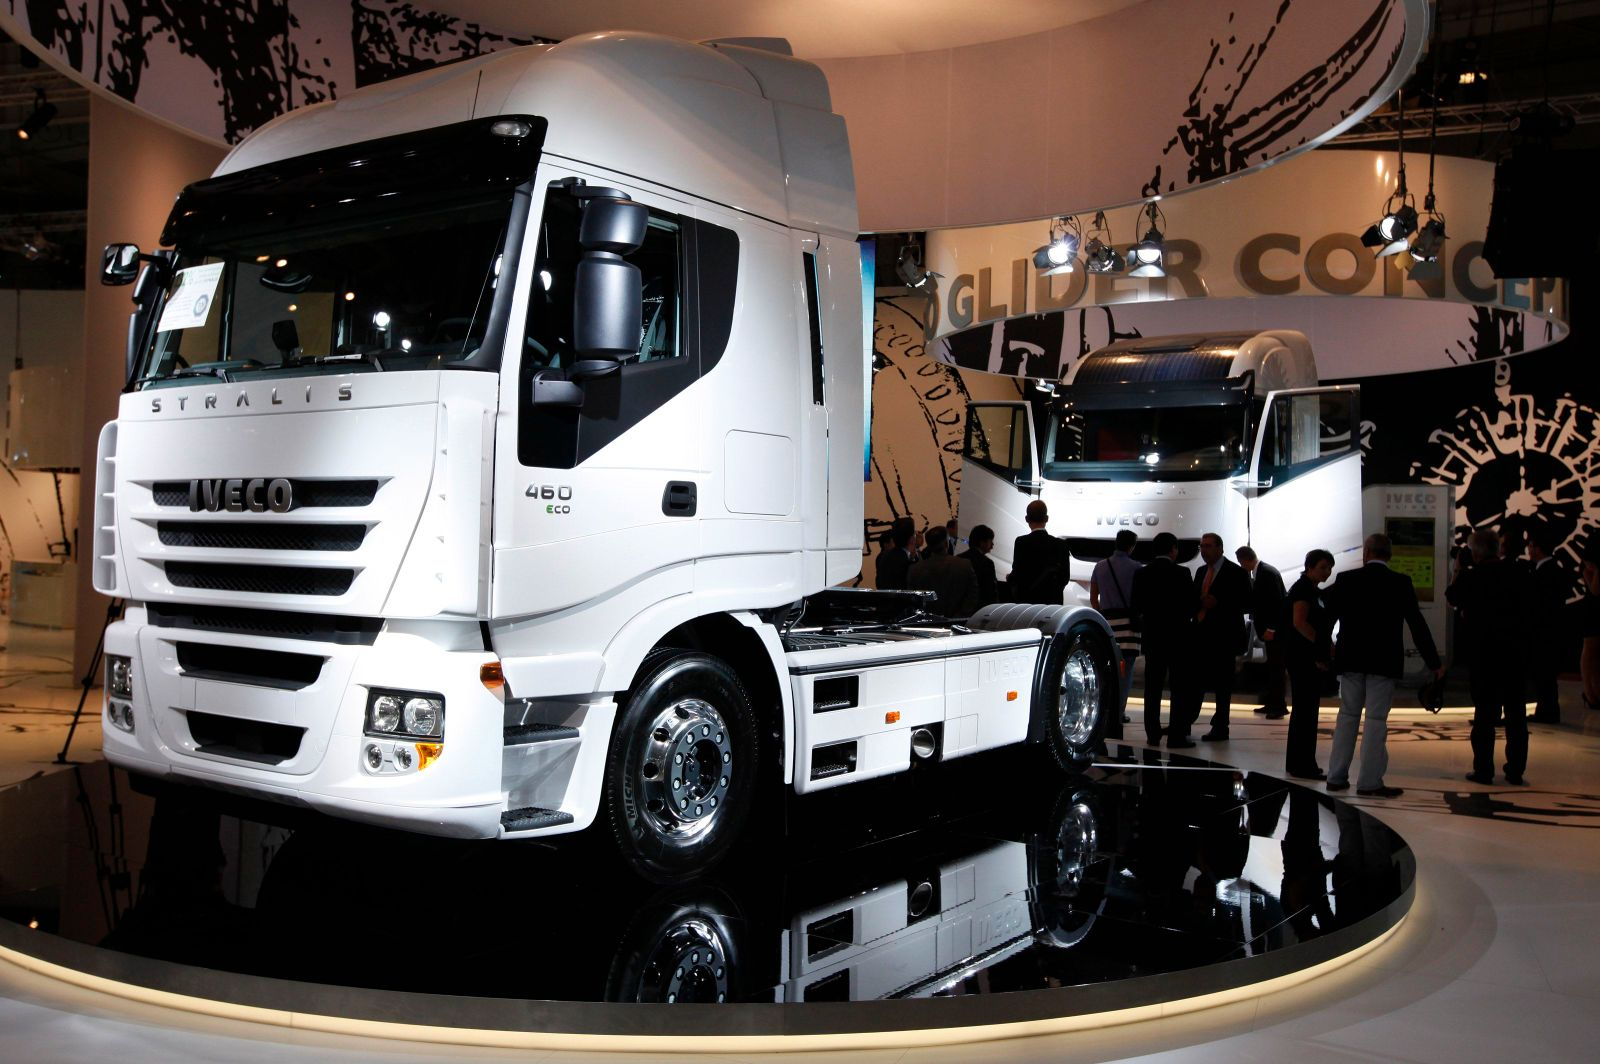 Visitors walk along heavy trucks at Fiat Iveco exhibition area at IAA commercial vehicles trade fair in Hanover